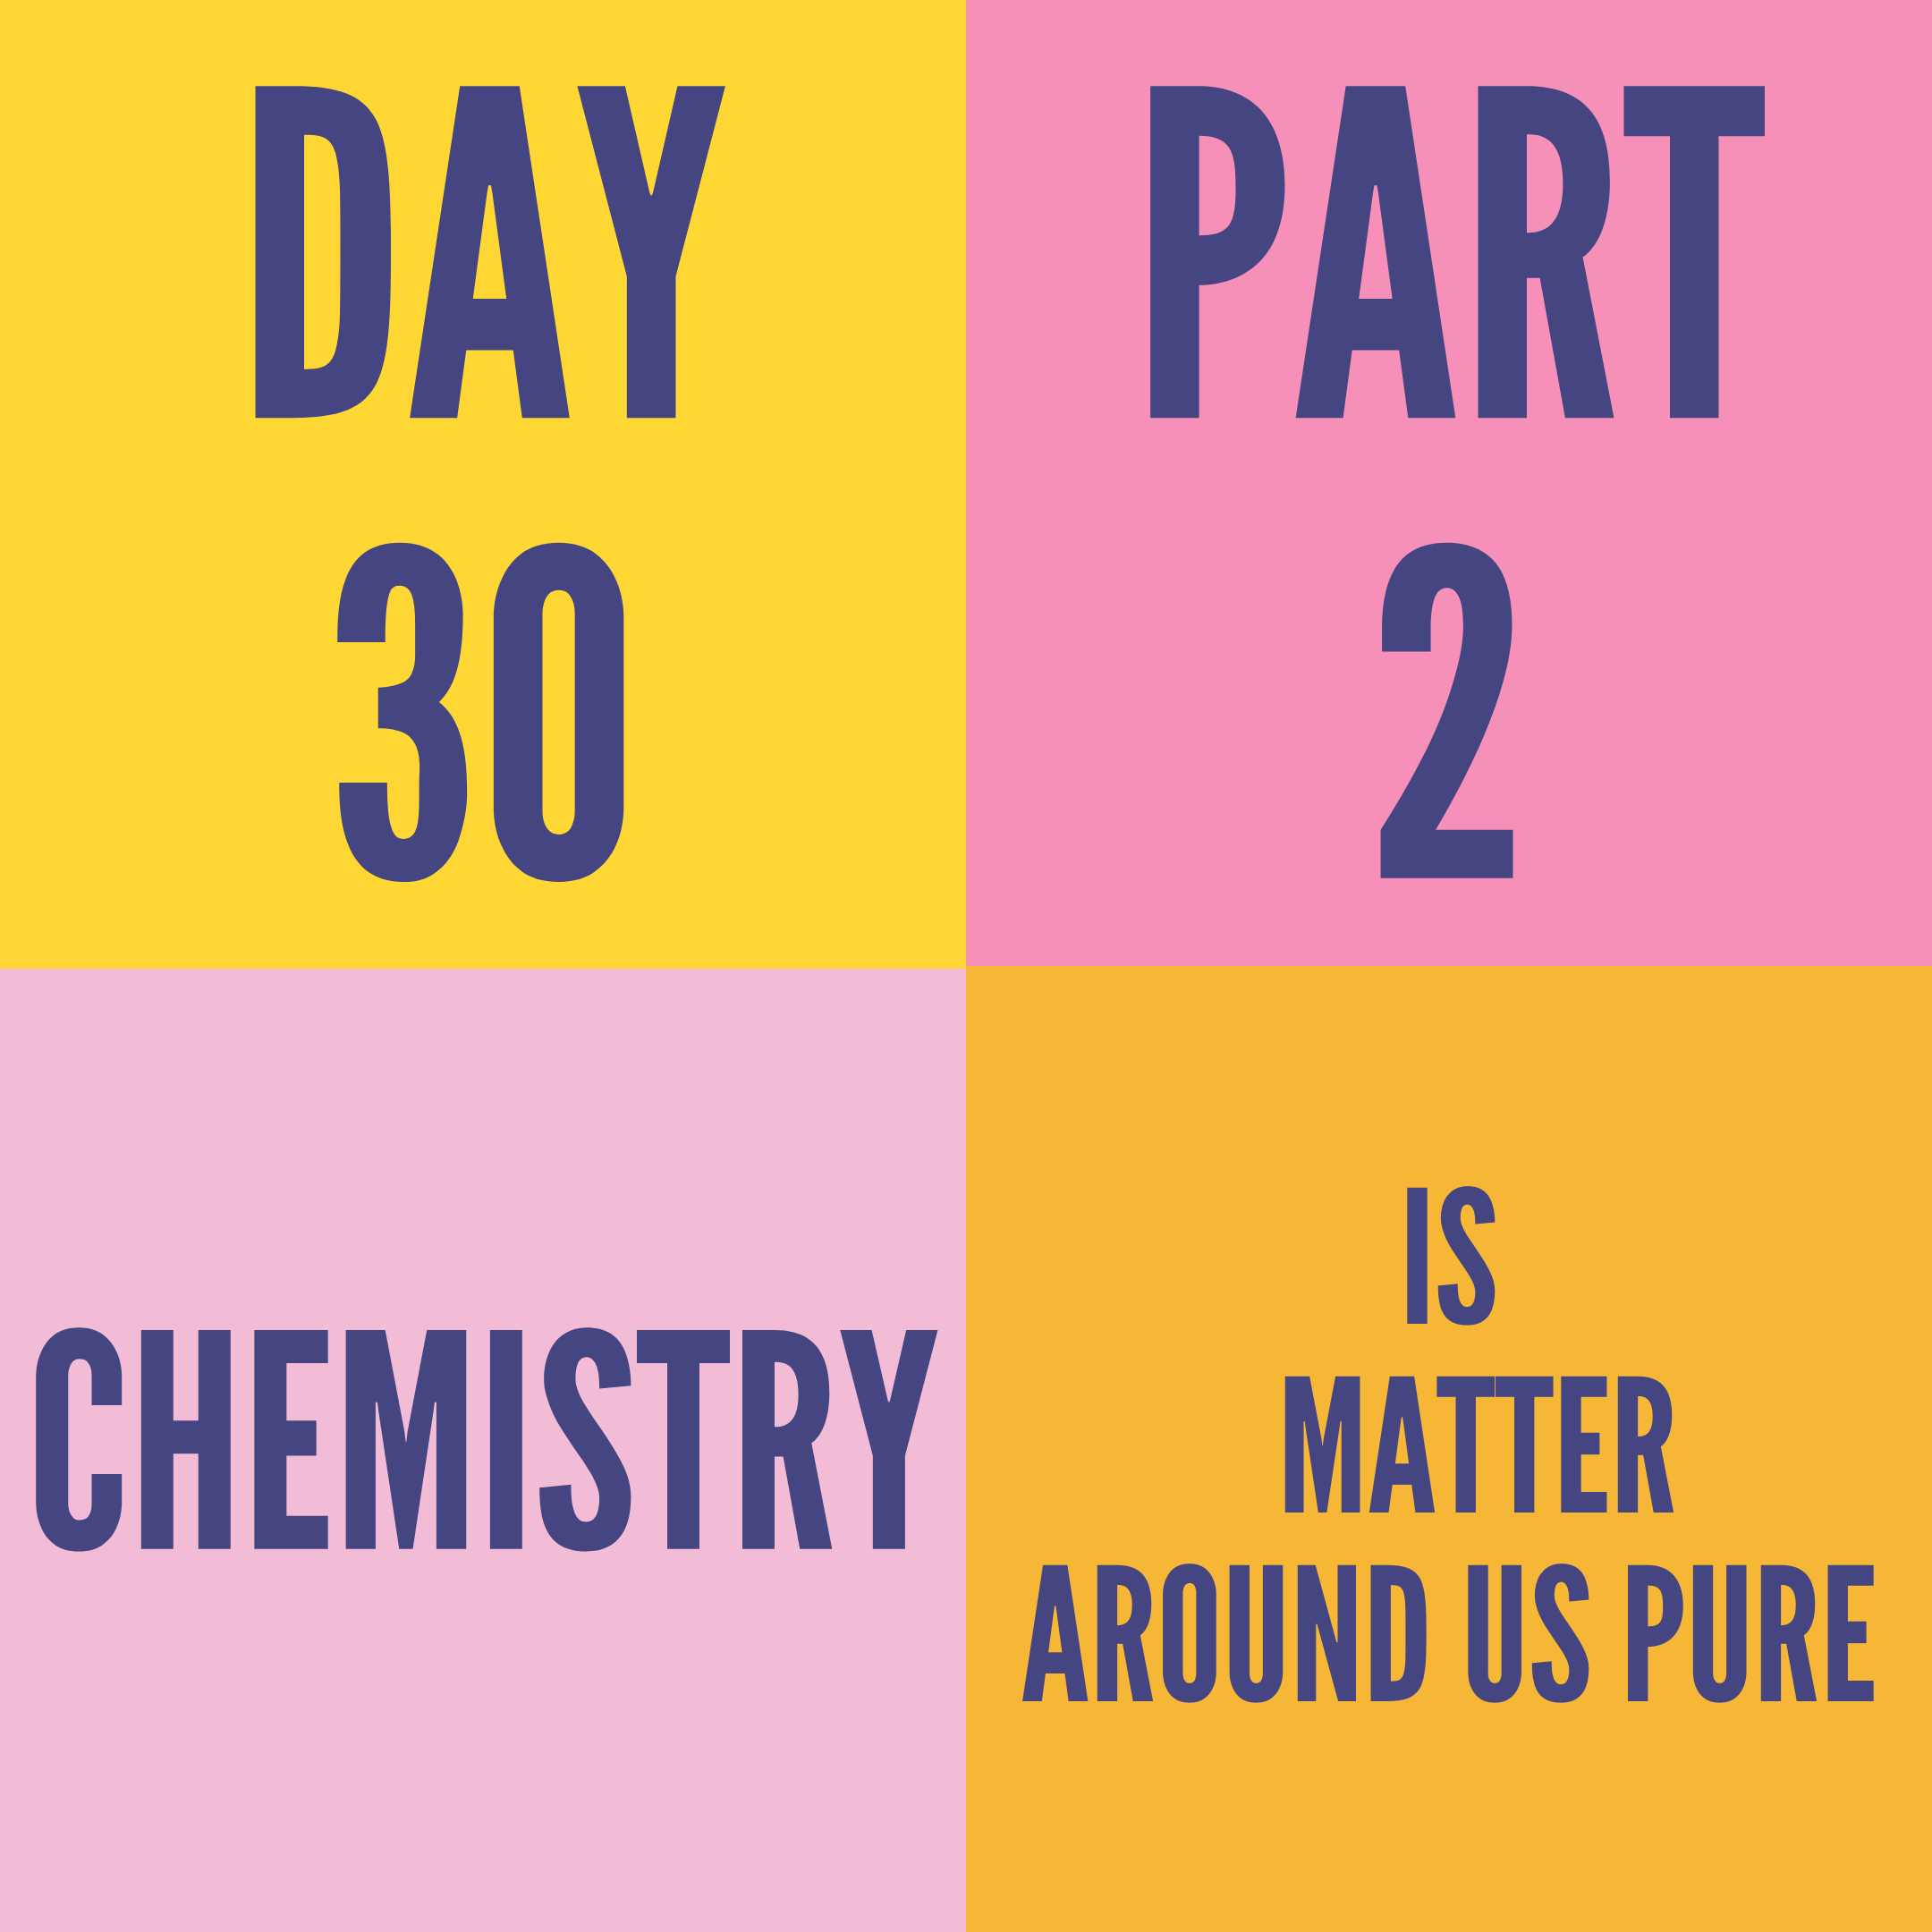 DAY-31 PART-2 IS MATTER AROUND US PURE